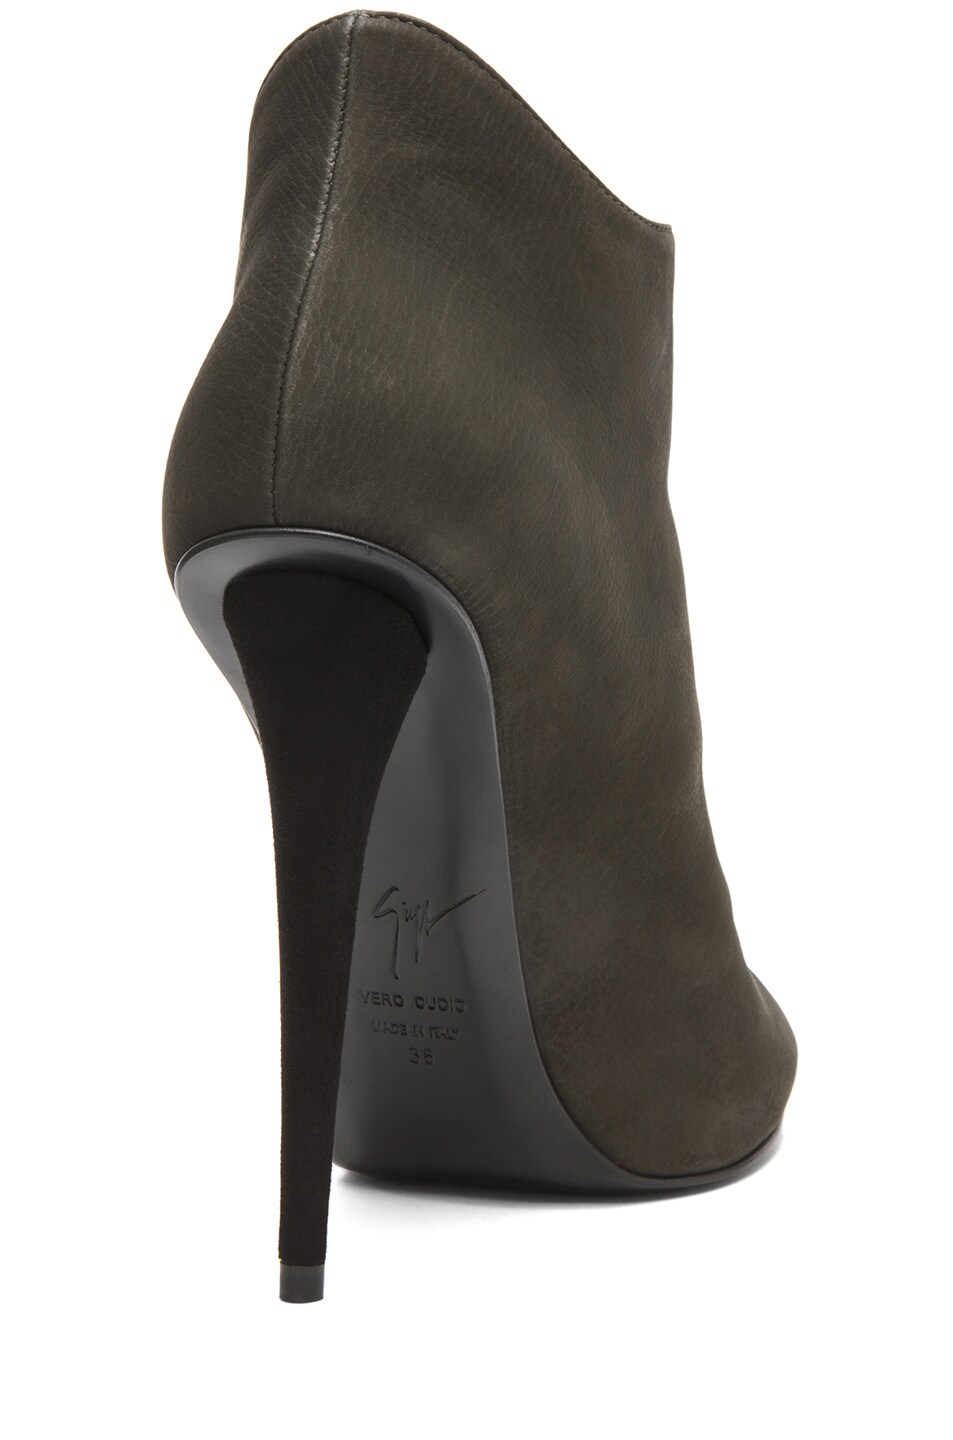 Image 3 of Giuseppe Zanotti Suede Zip Up Ankle Boot in Olive